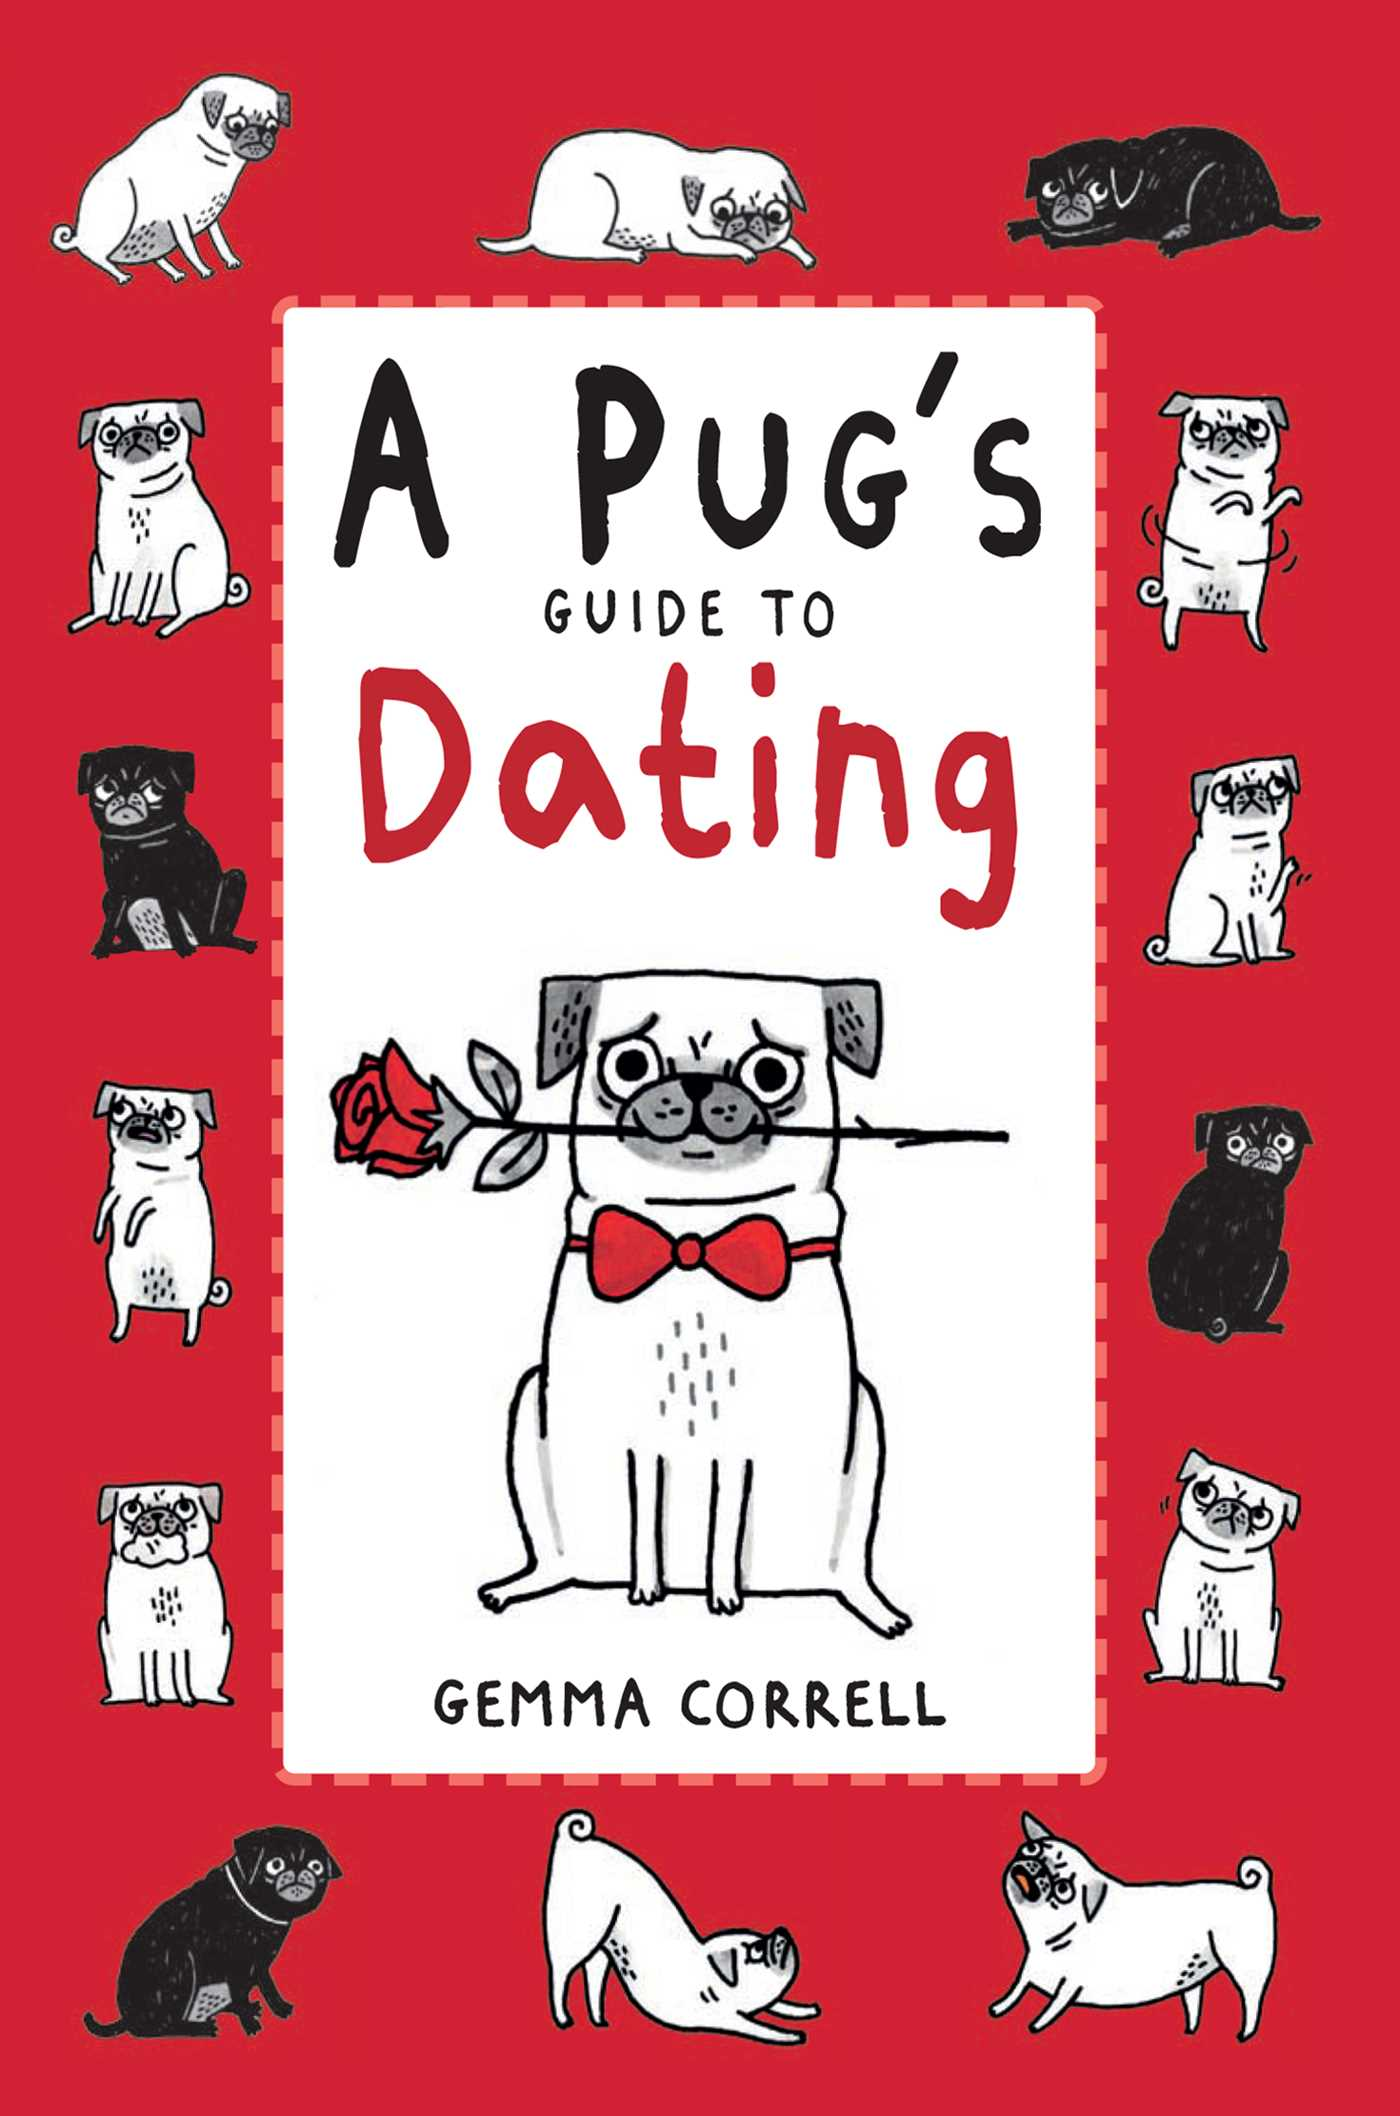 A pug guide to dating by gemma correll